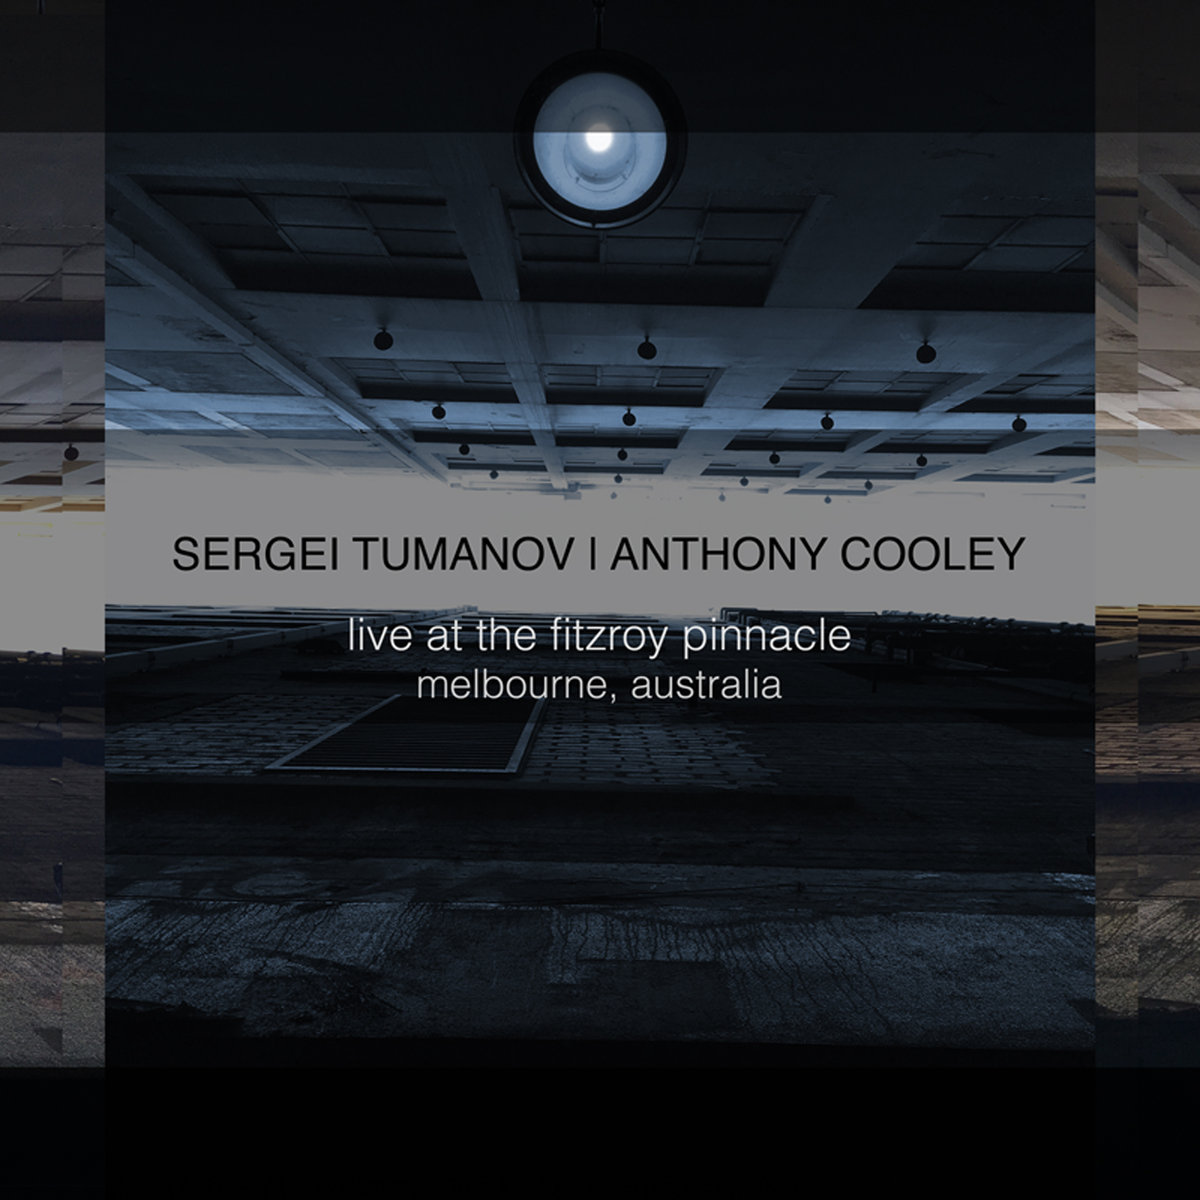 Sergei Tumanov & Anthony Cooley - Live At The Fitzroy Pinnacle